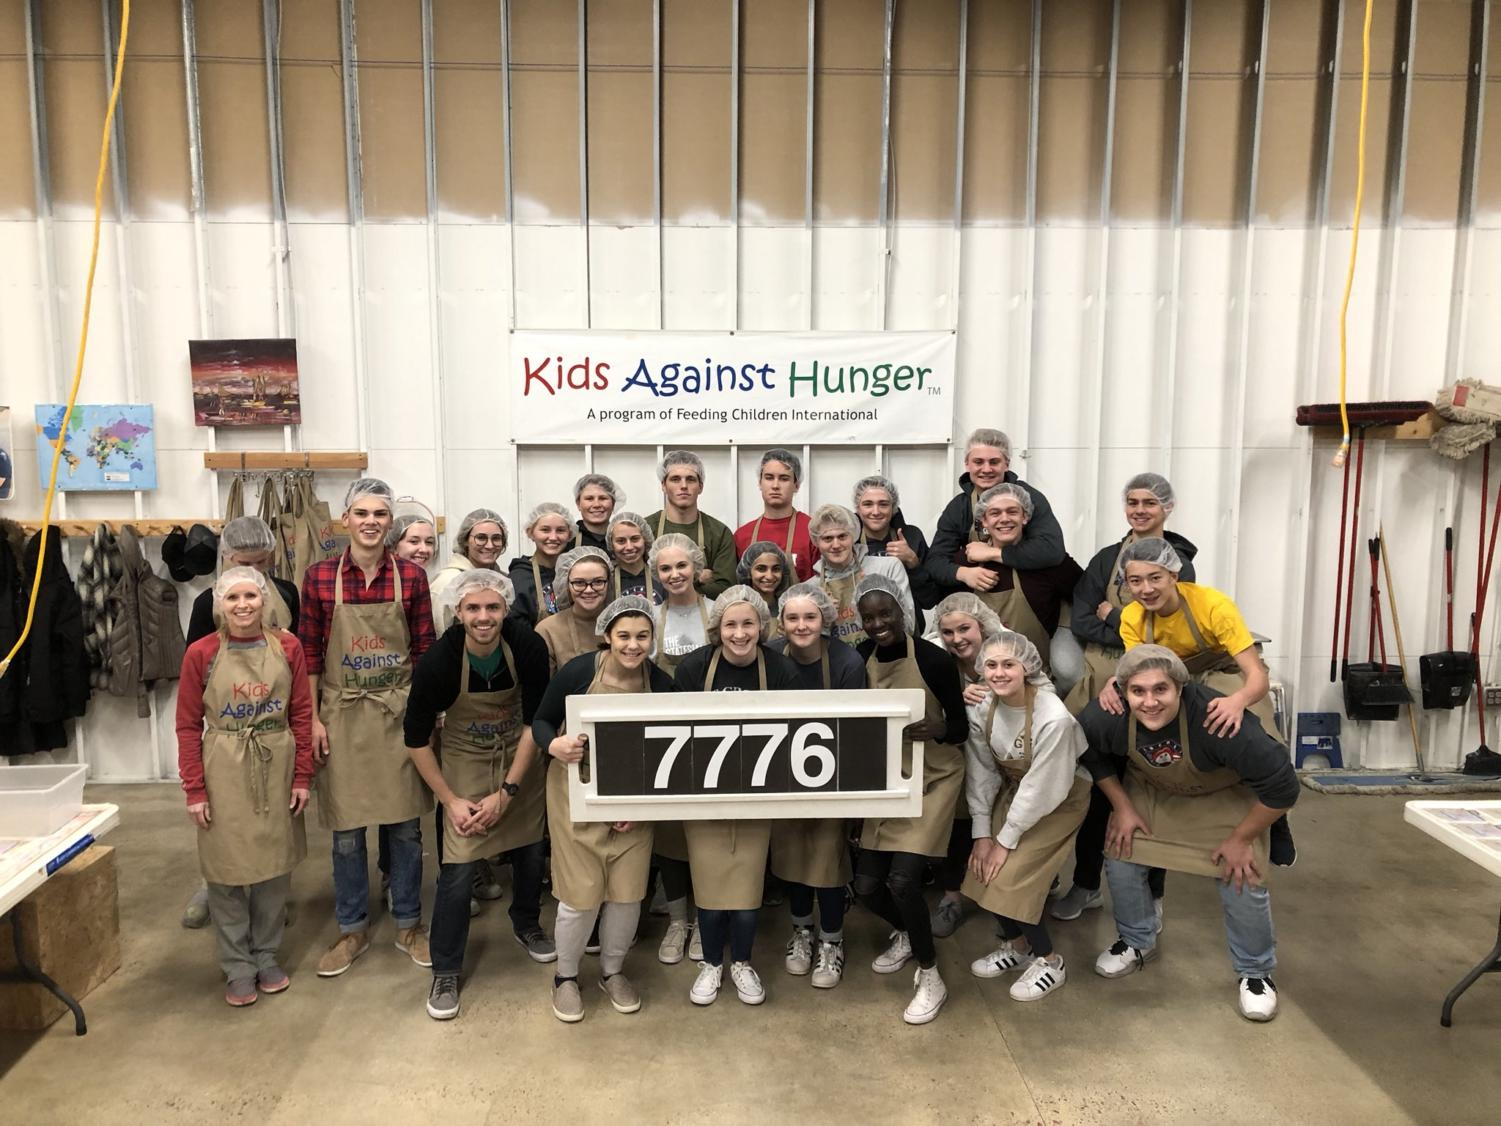 The LHS Student Council volunteered at Kids Against Hunger on Tuesday night